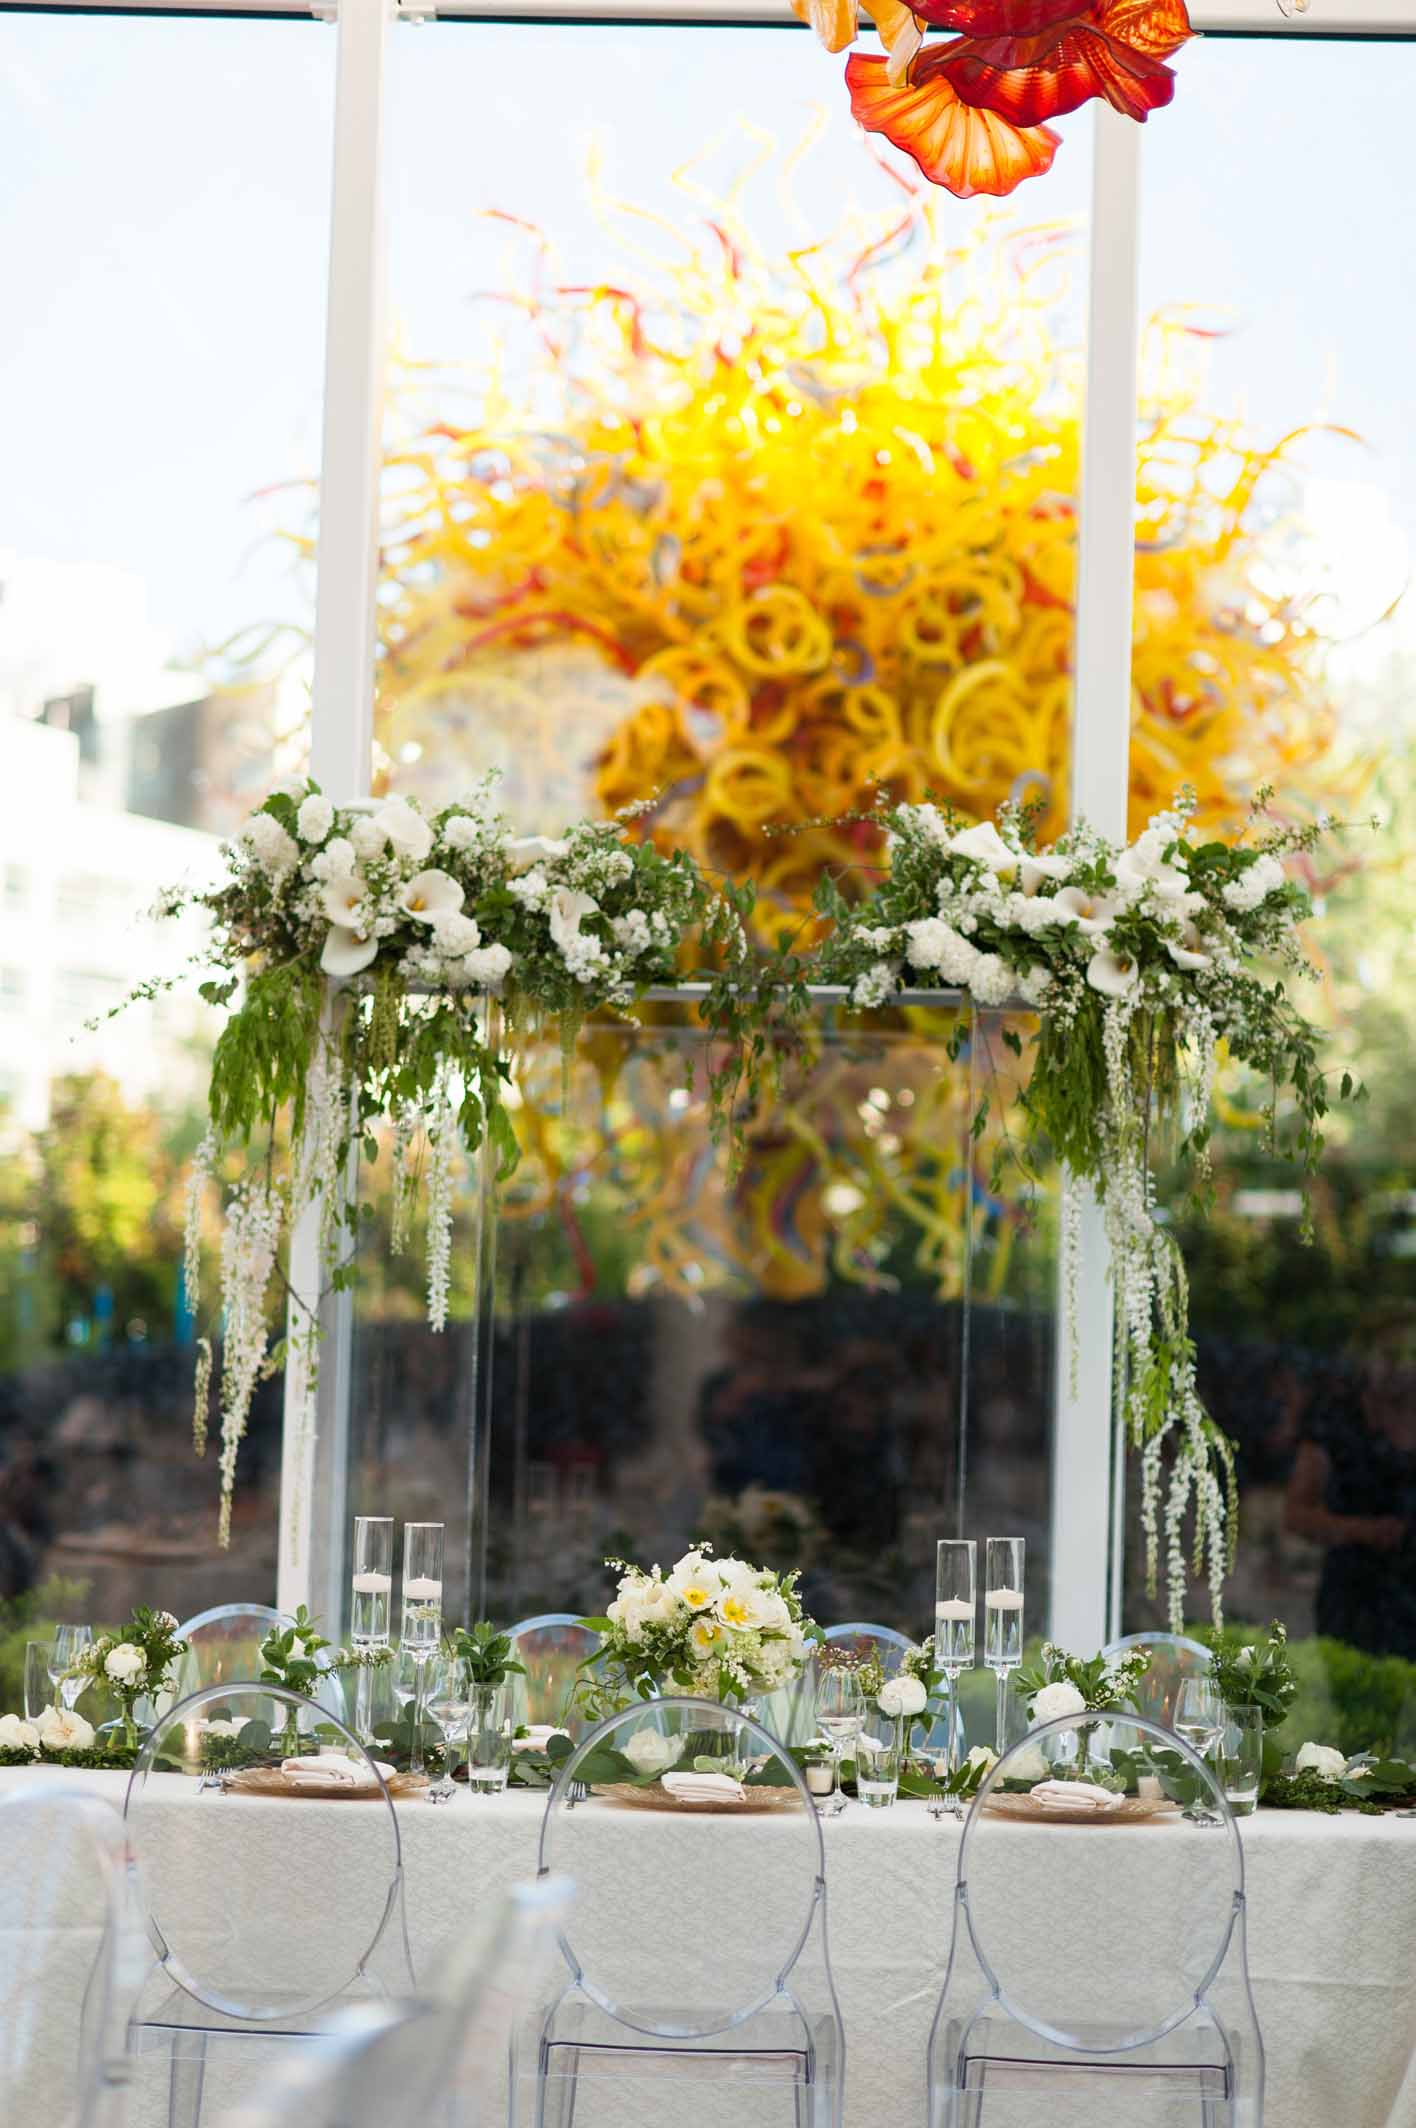 Head table at Chihuly Garden and Glass wedding with large clear lucite arbor covered in greenery and white flowers